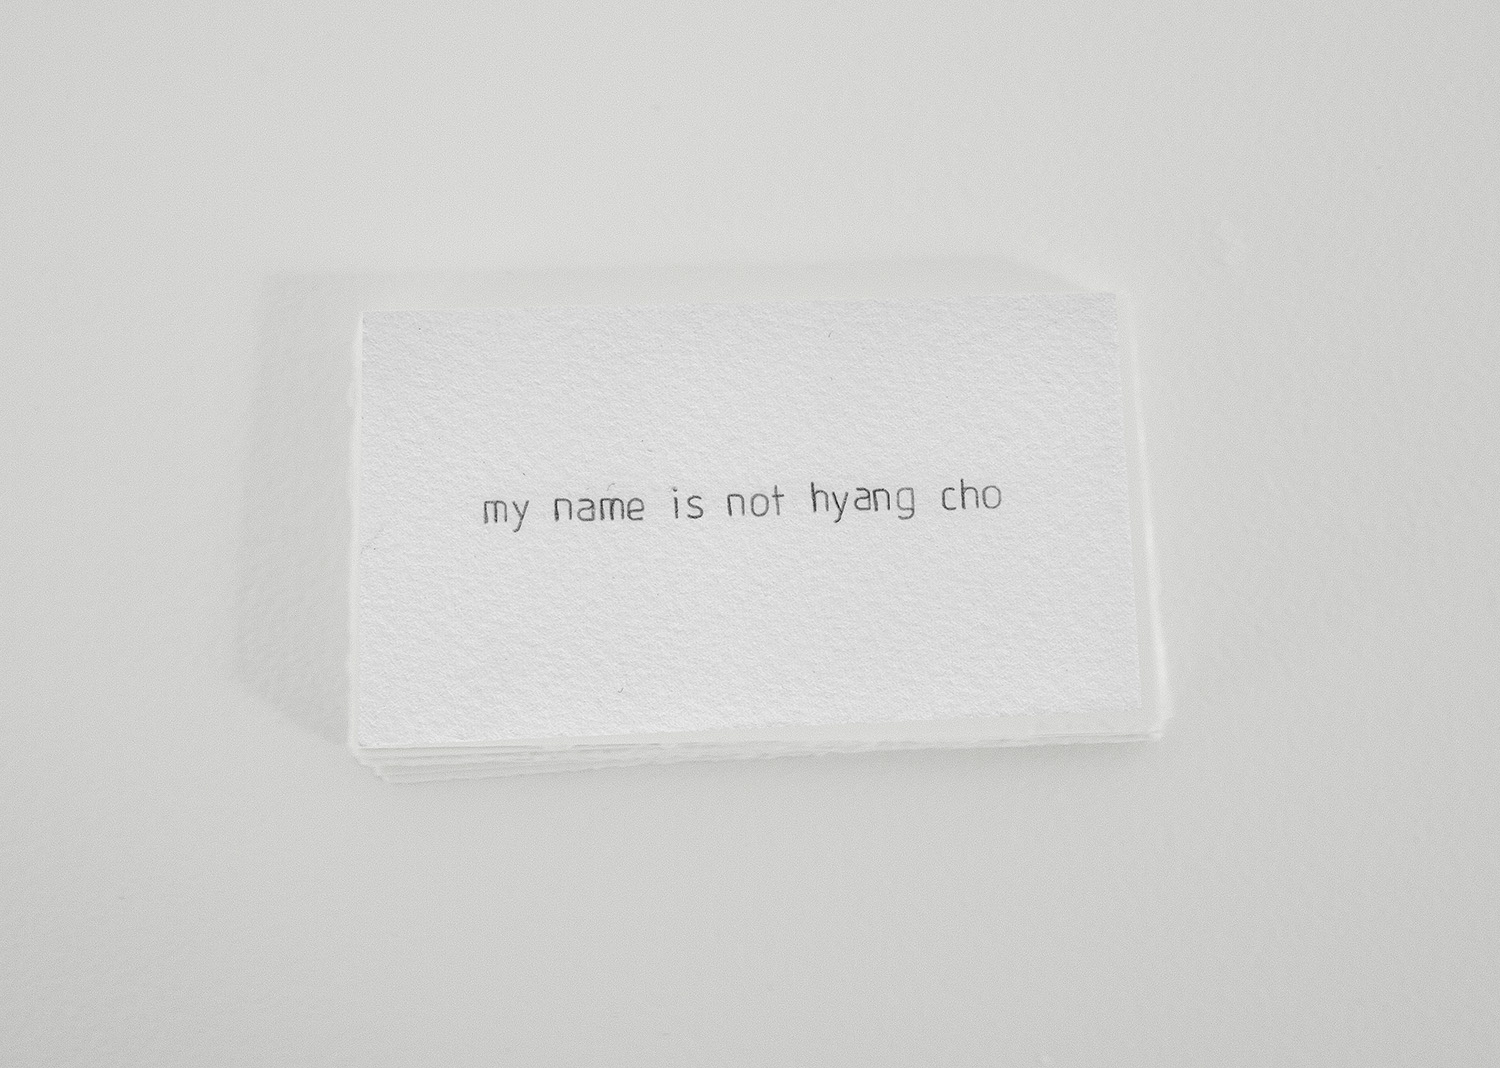 my name is not hyang cho,  2010-11 (ongoing), 2 x 3.5 in, paper, graphite